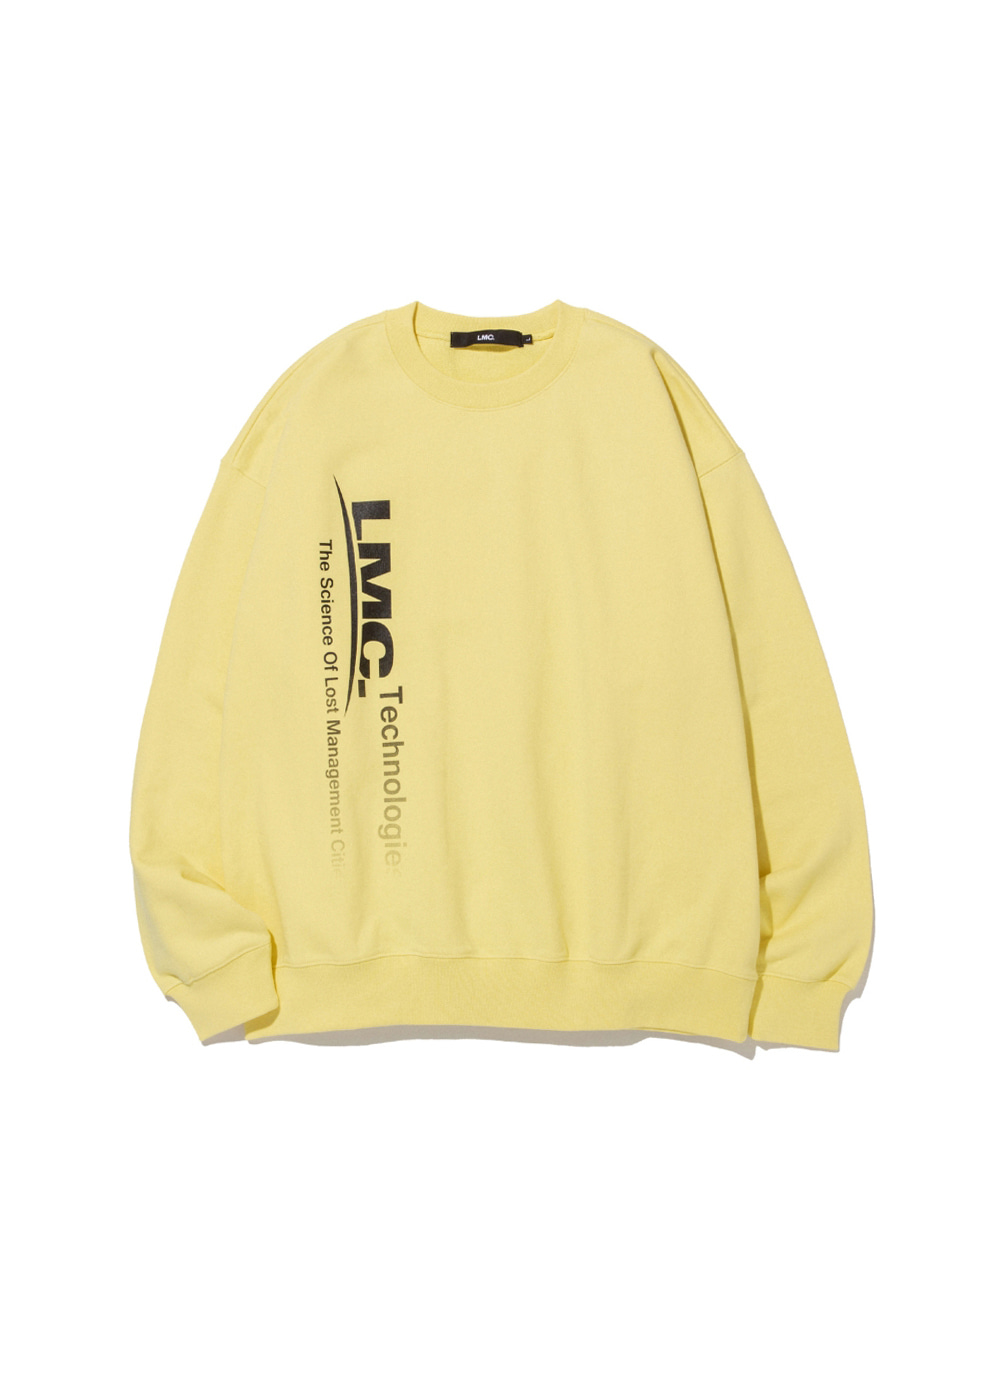 LMC TECH FADEOUT OVERSIZED SWEATSHIRT lt. yellow